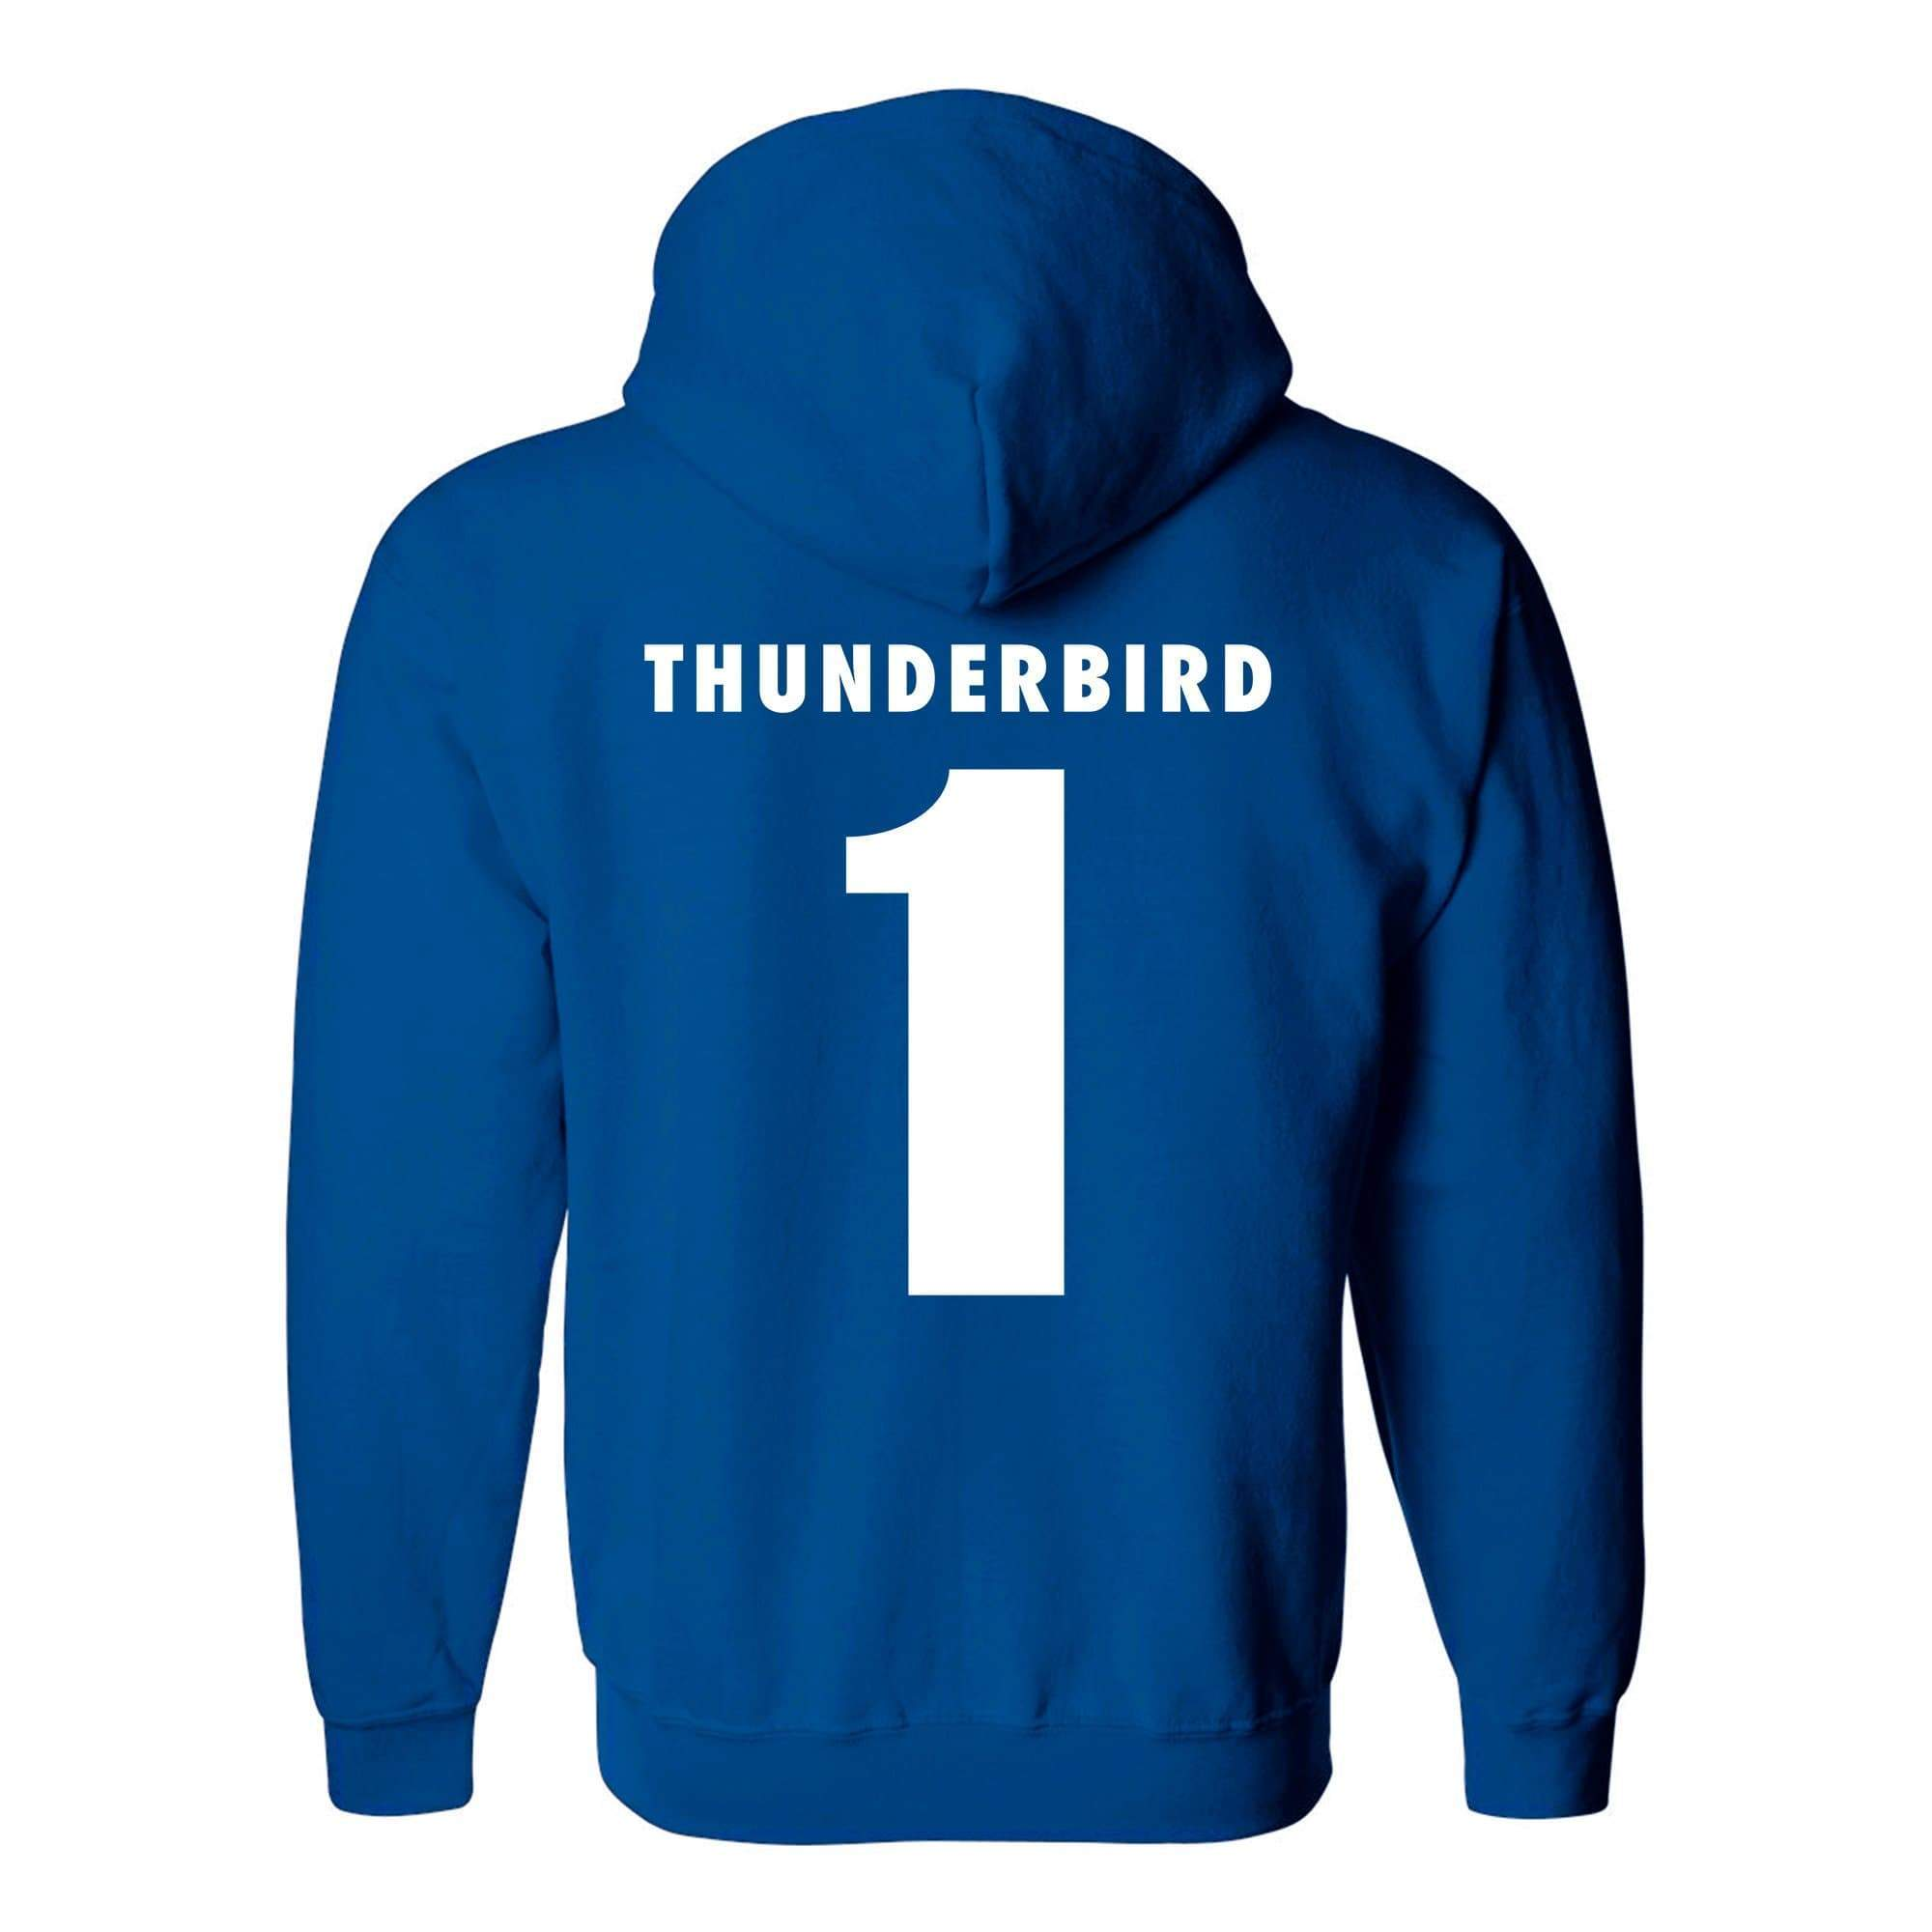 Thunderbird 1 Hoodie [Official & Exclusive] - The Gerry Anderson Store